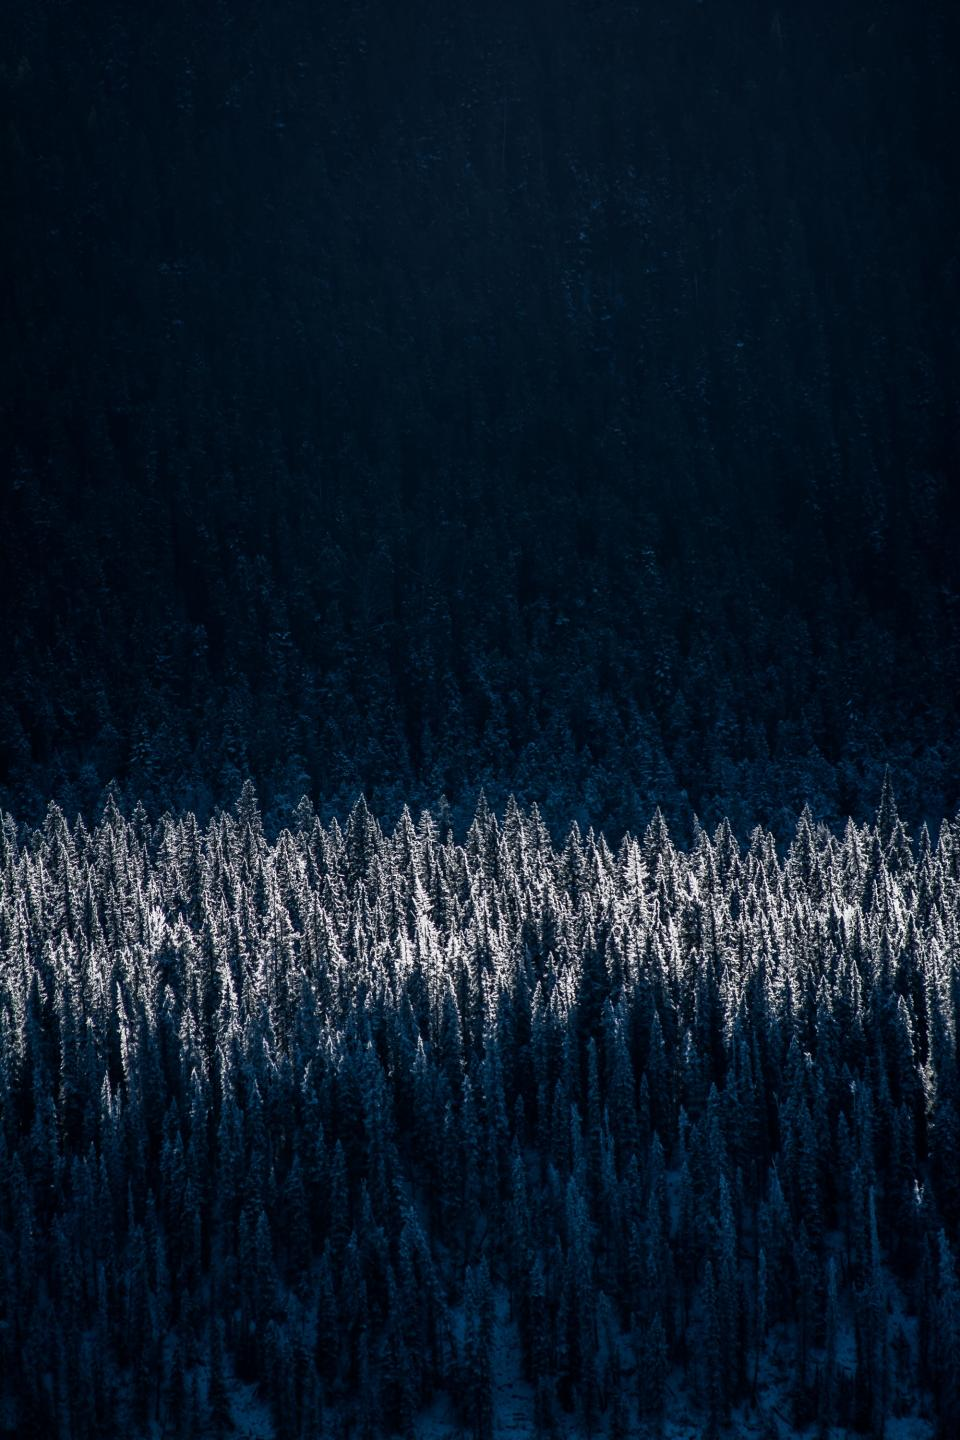 trees, forest, woods, nature, dark